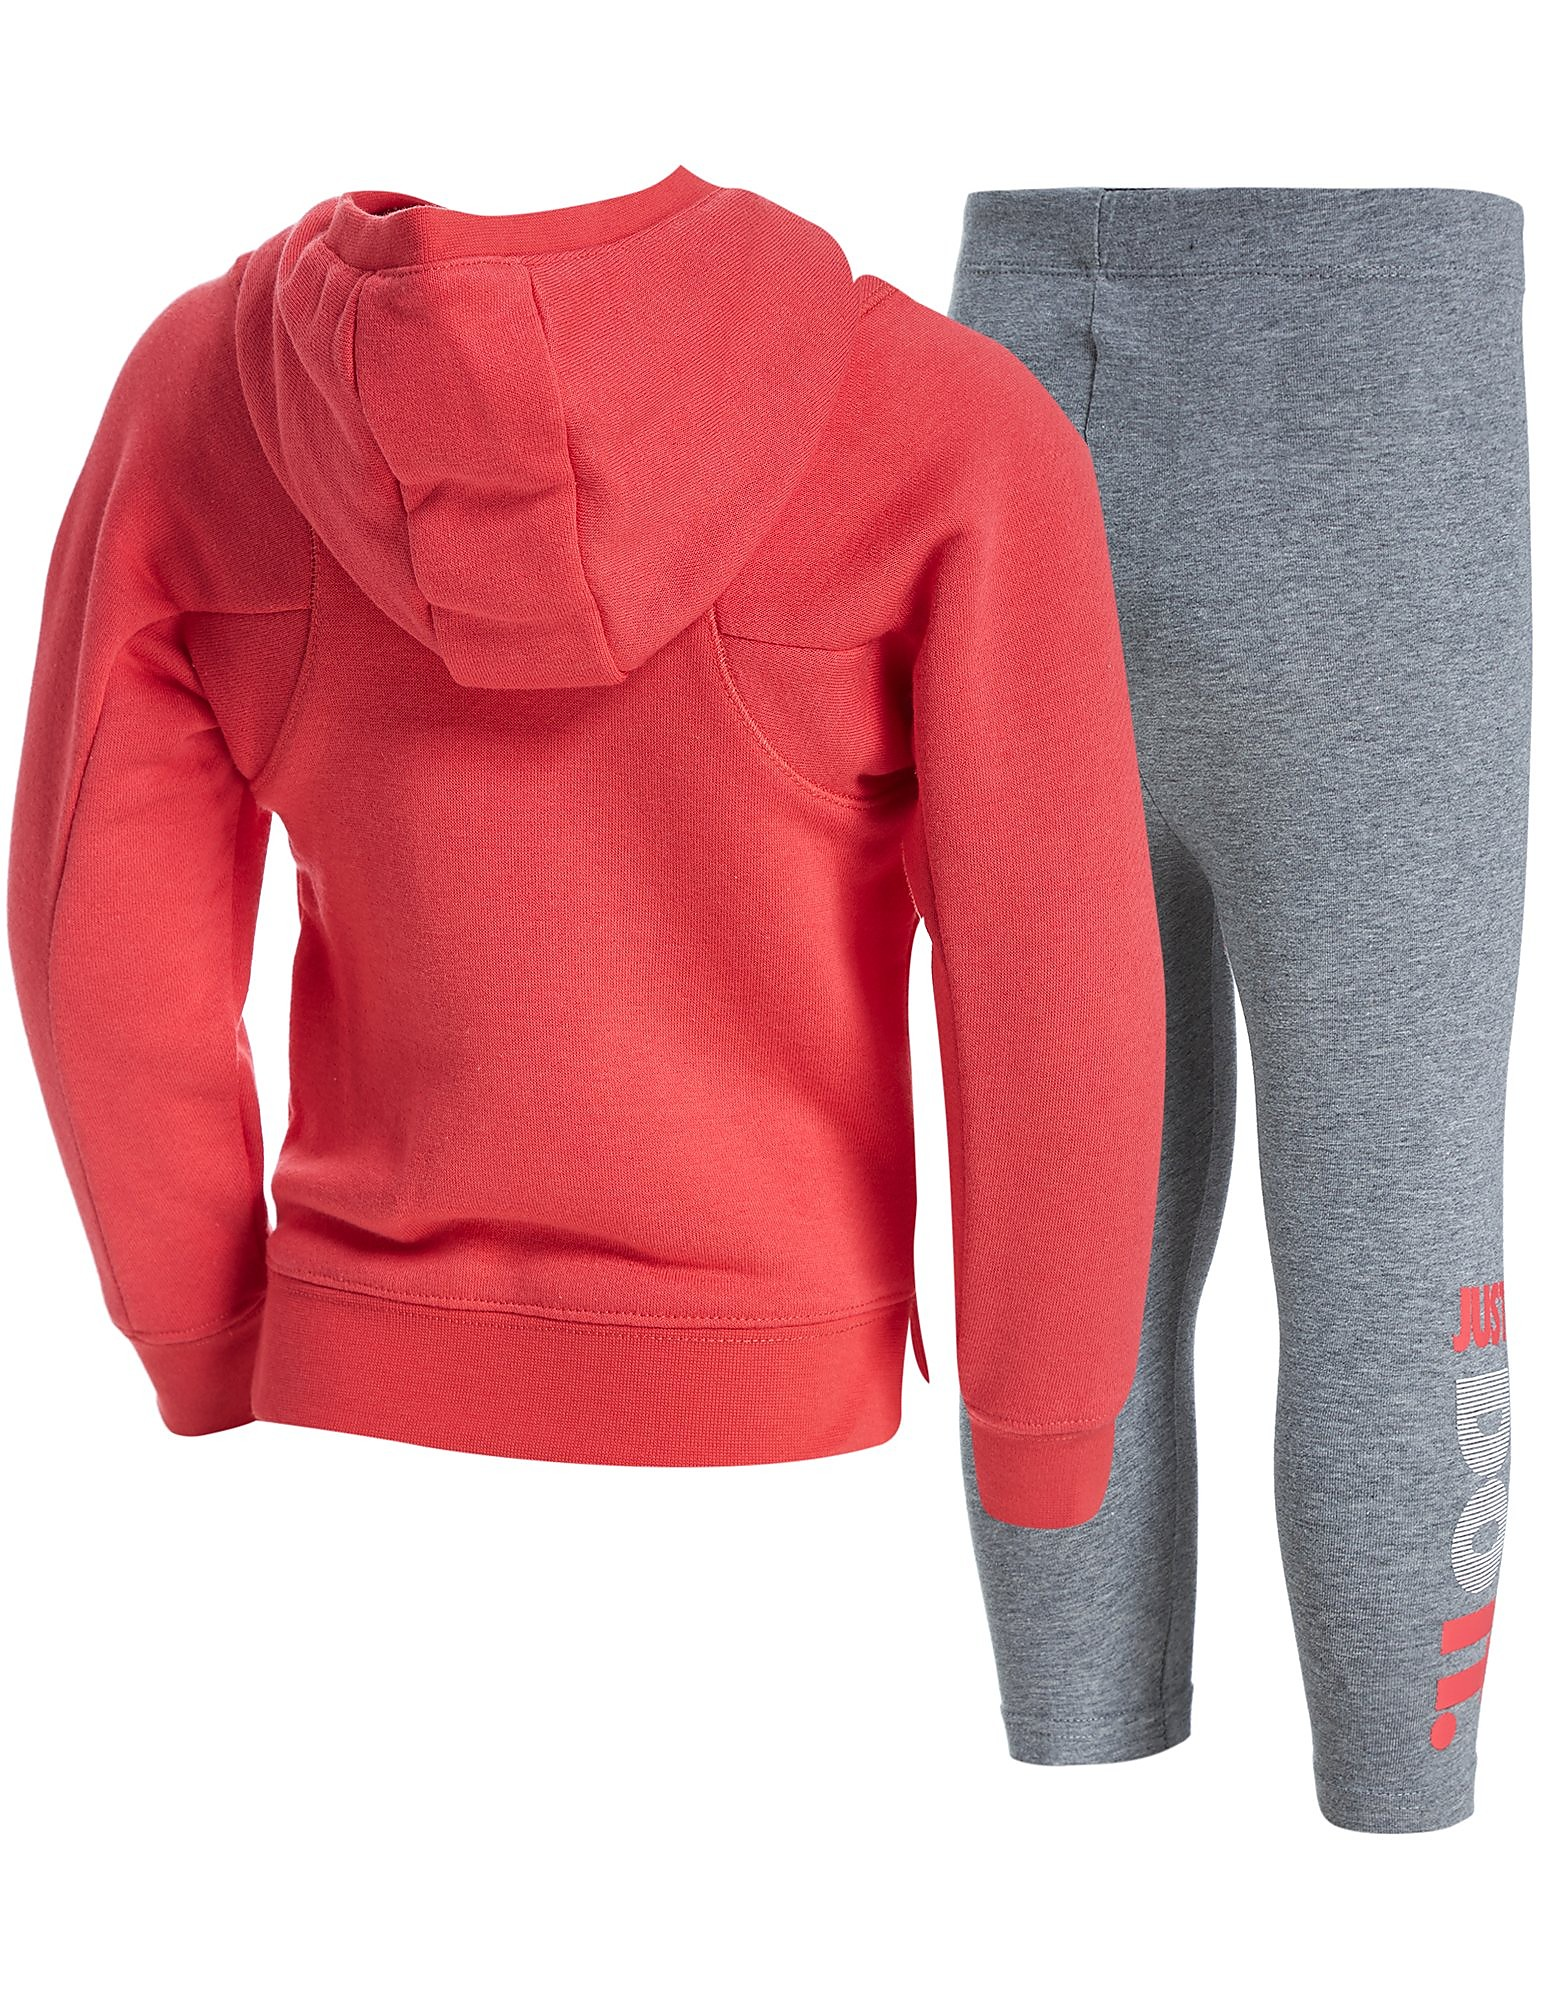 Nike Girls' Just Do It Hoody/ Leggings Set Infant